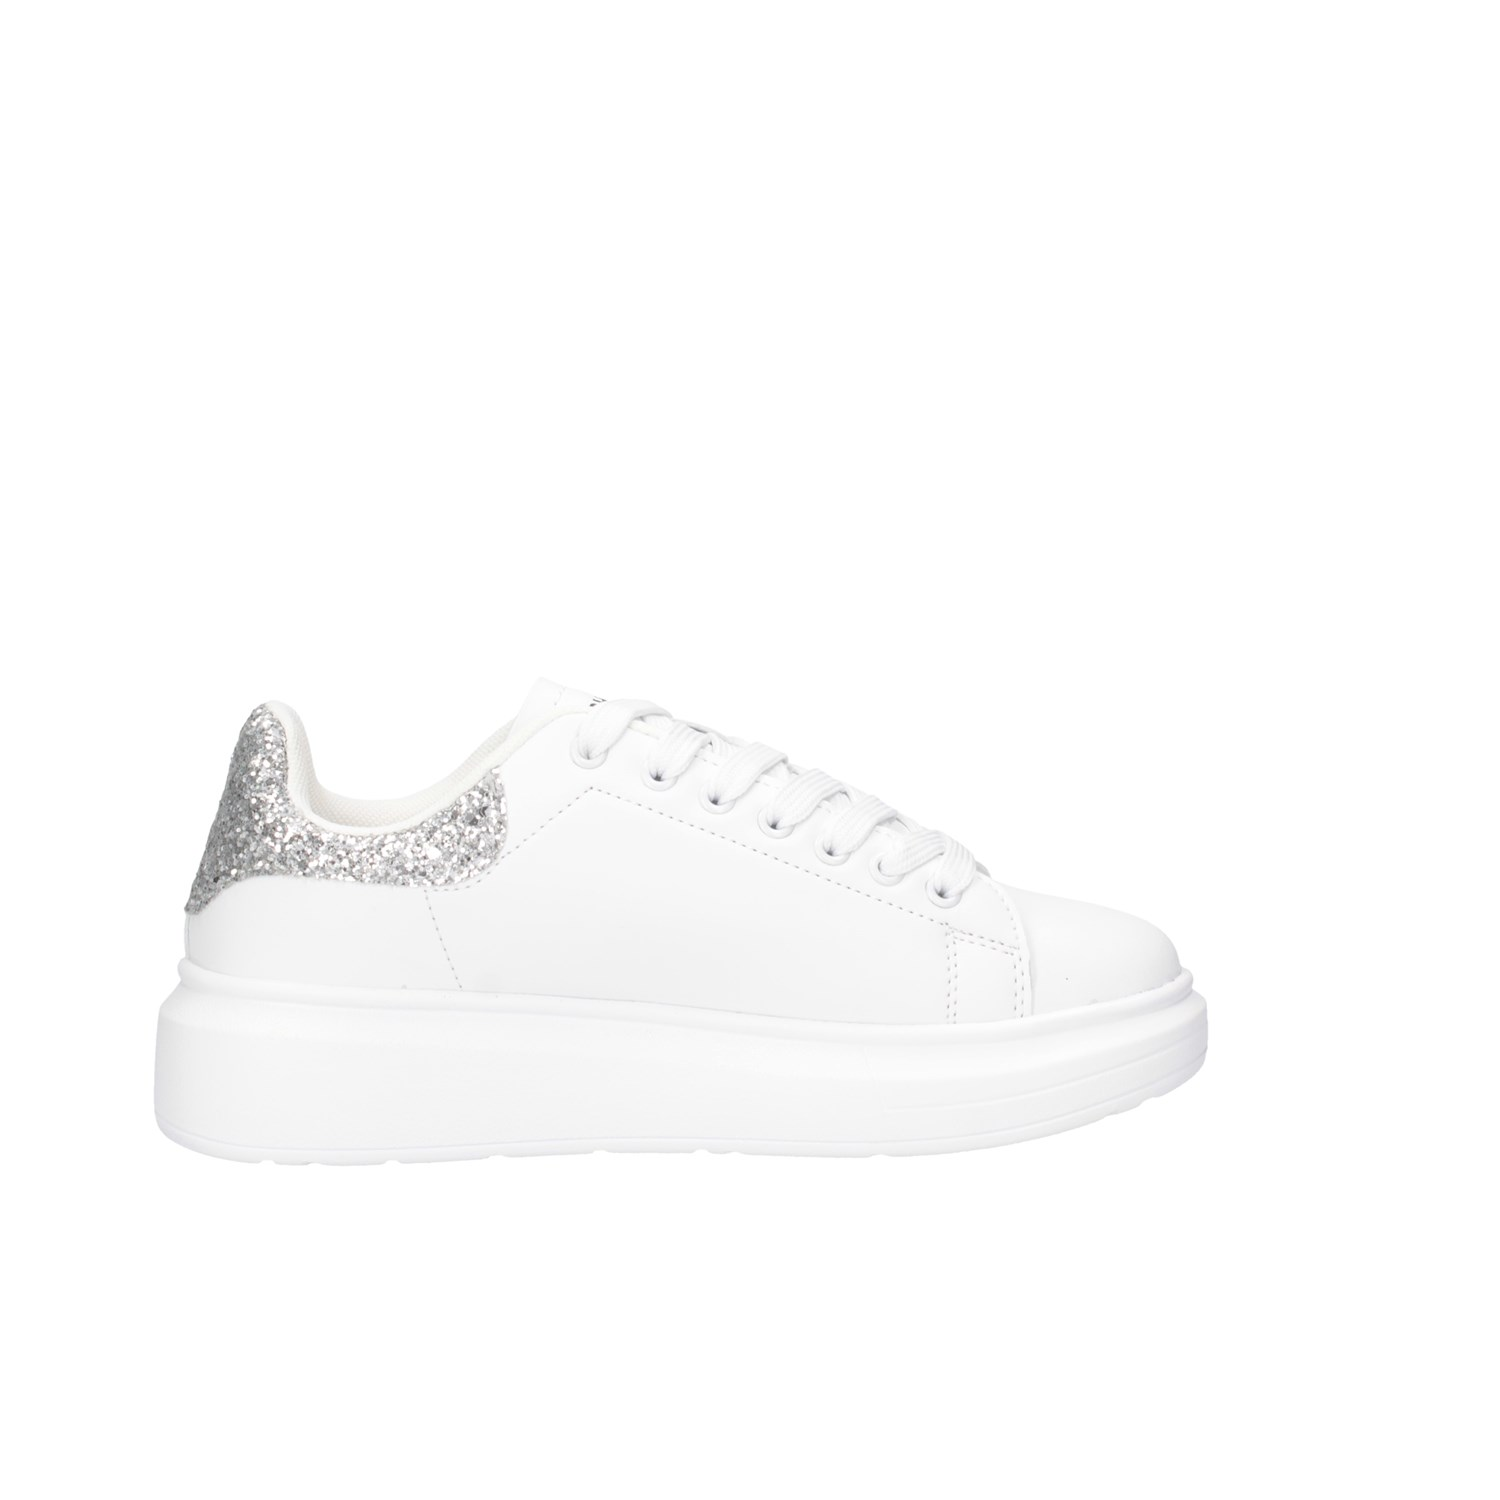 Shop Art Donna 20555 S Bianco//argento Sneakers Autunno//Inverno